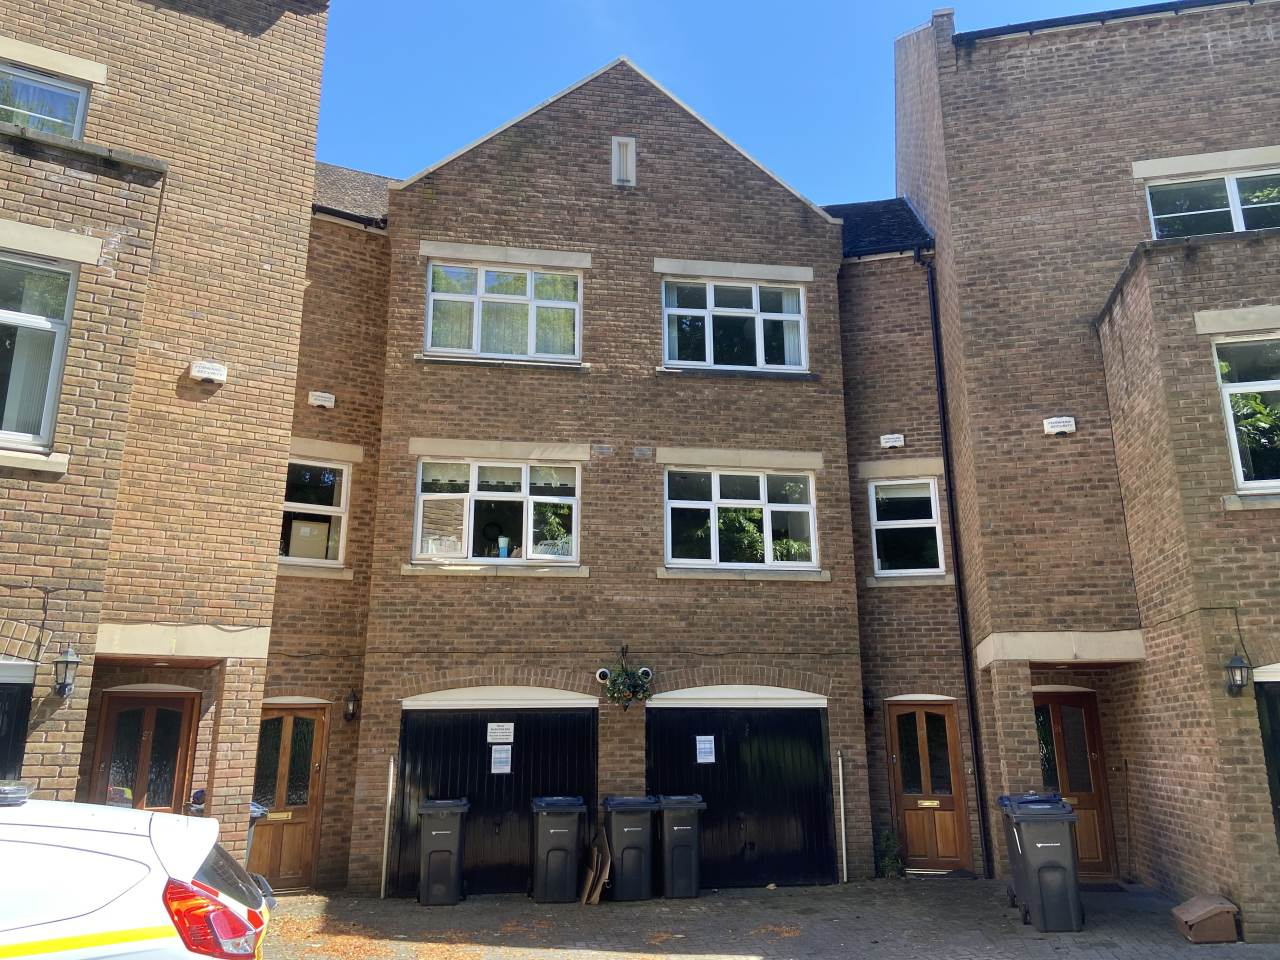 3 bed house to rent in Caversham Place, Sutton Coldfield, B73